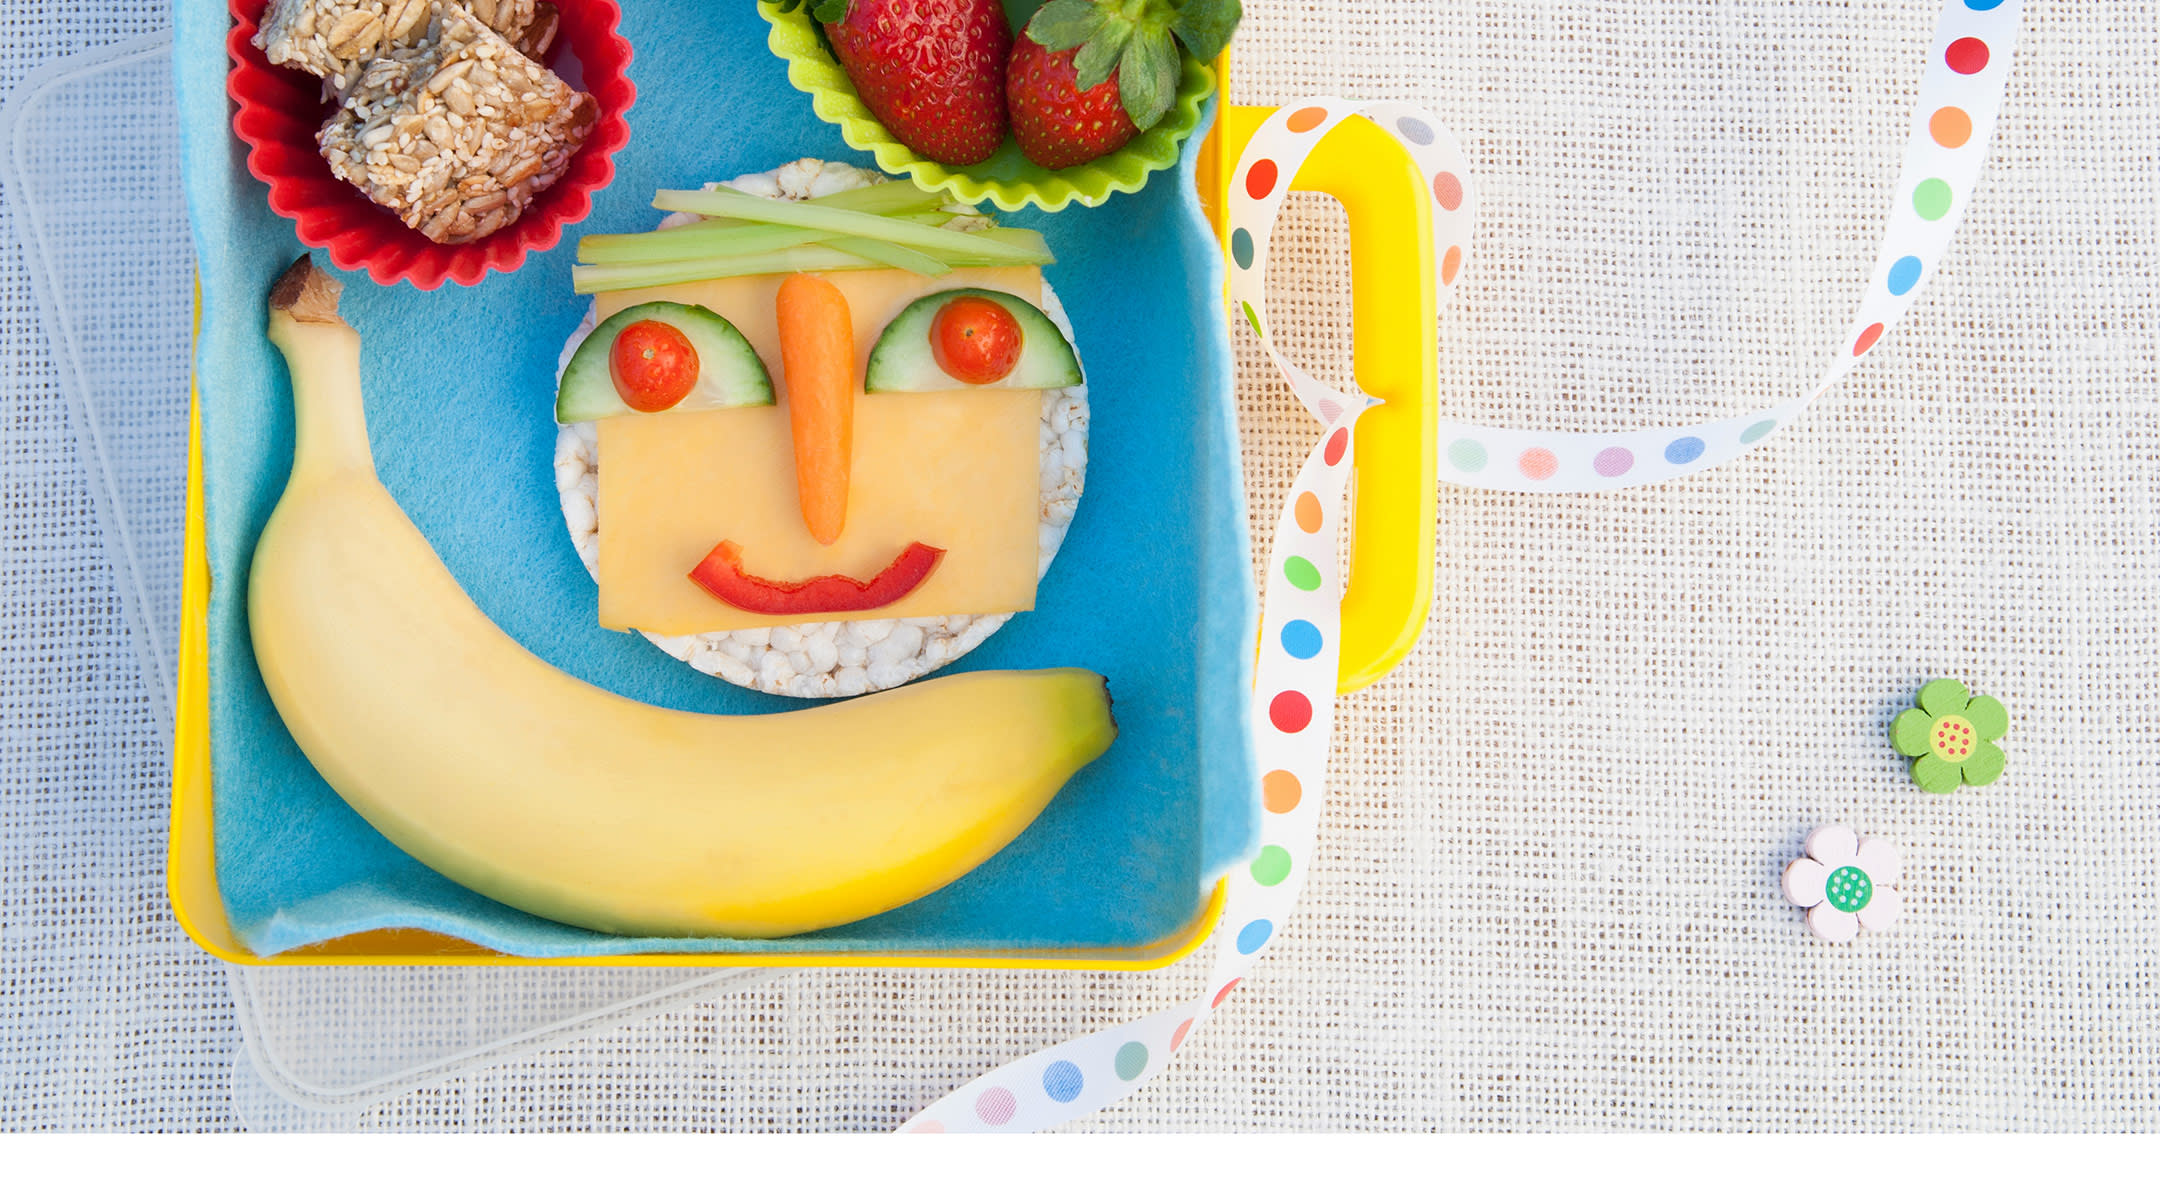 Playful kids lunch with smiley face